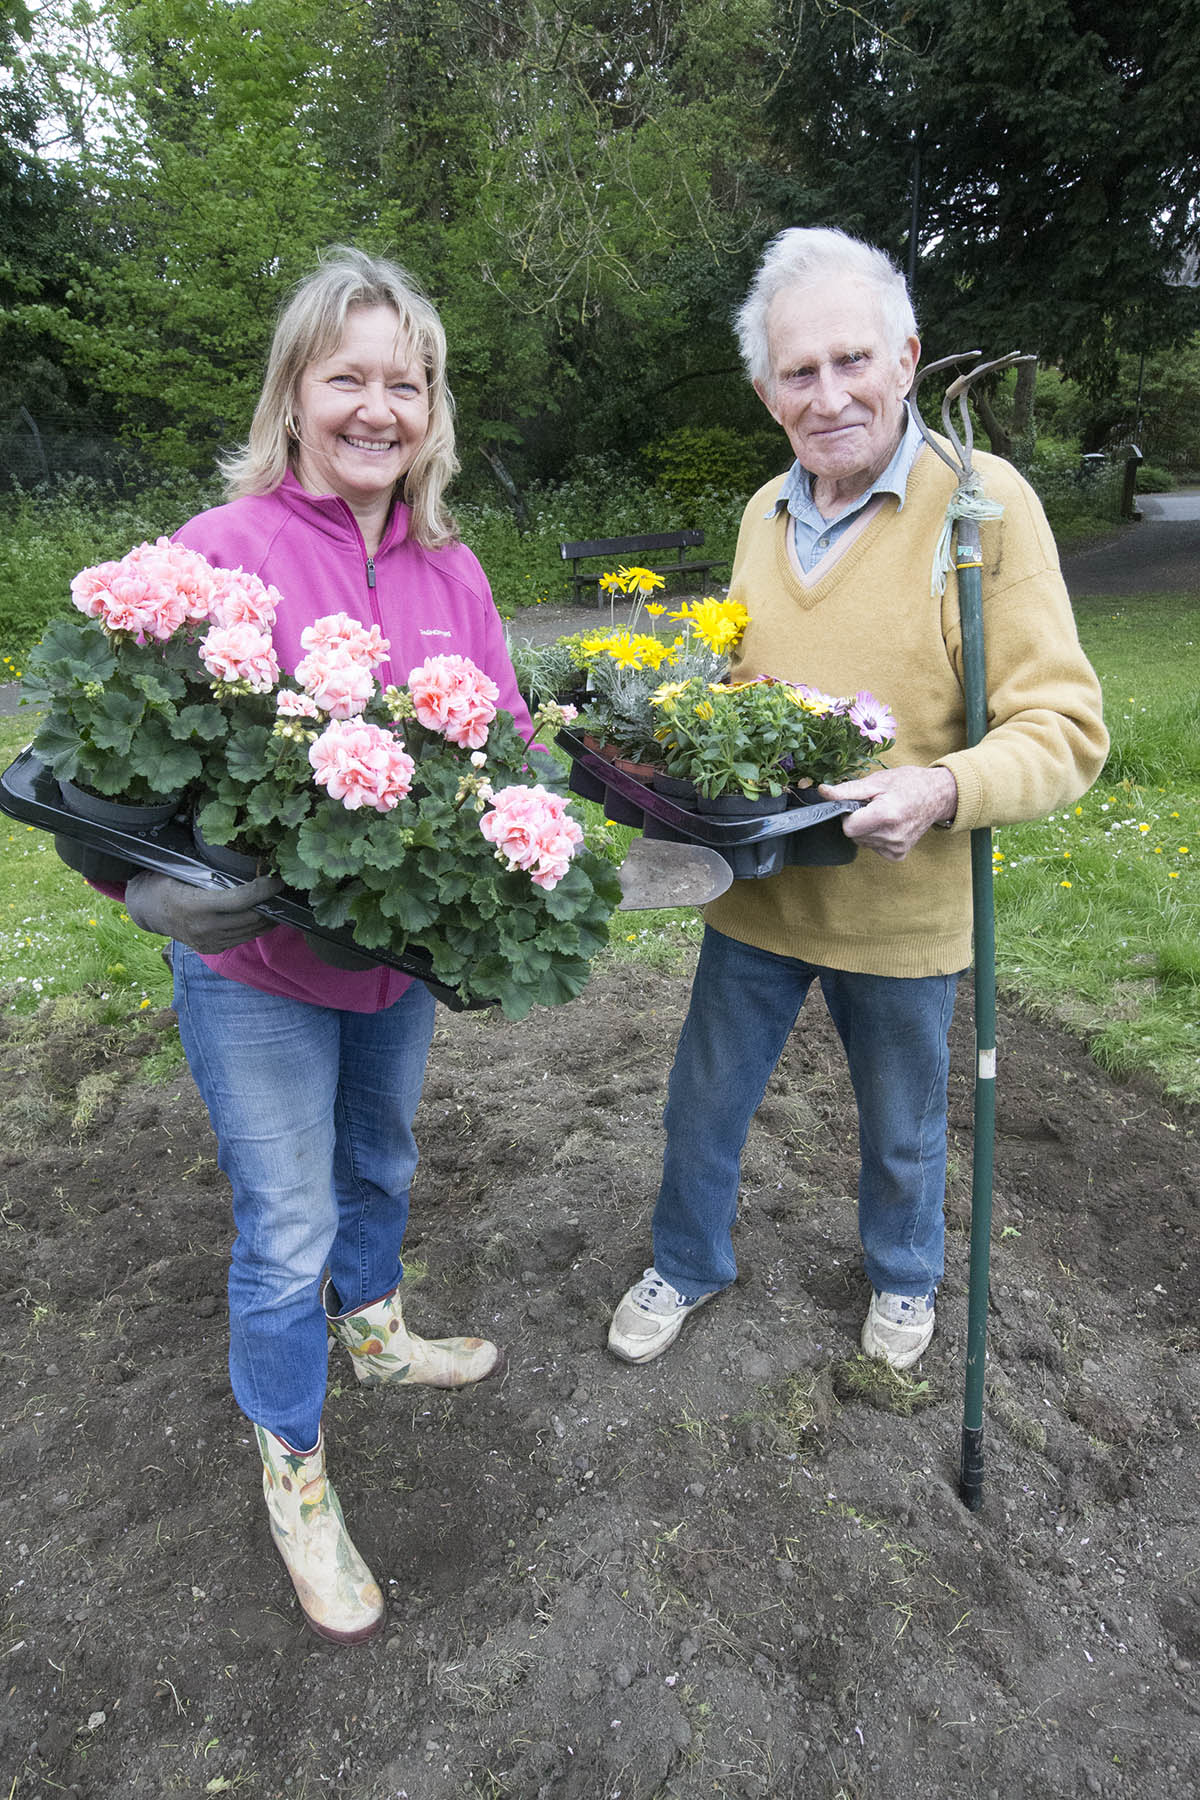 Ted Bamford plants new flower beds to make village pretty again with help from neighbour Eva Barnes